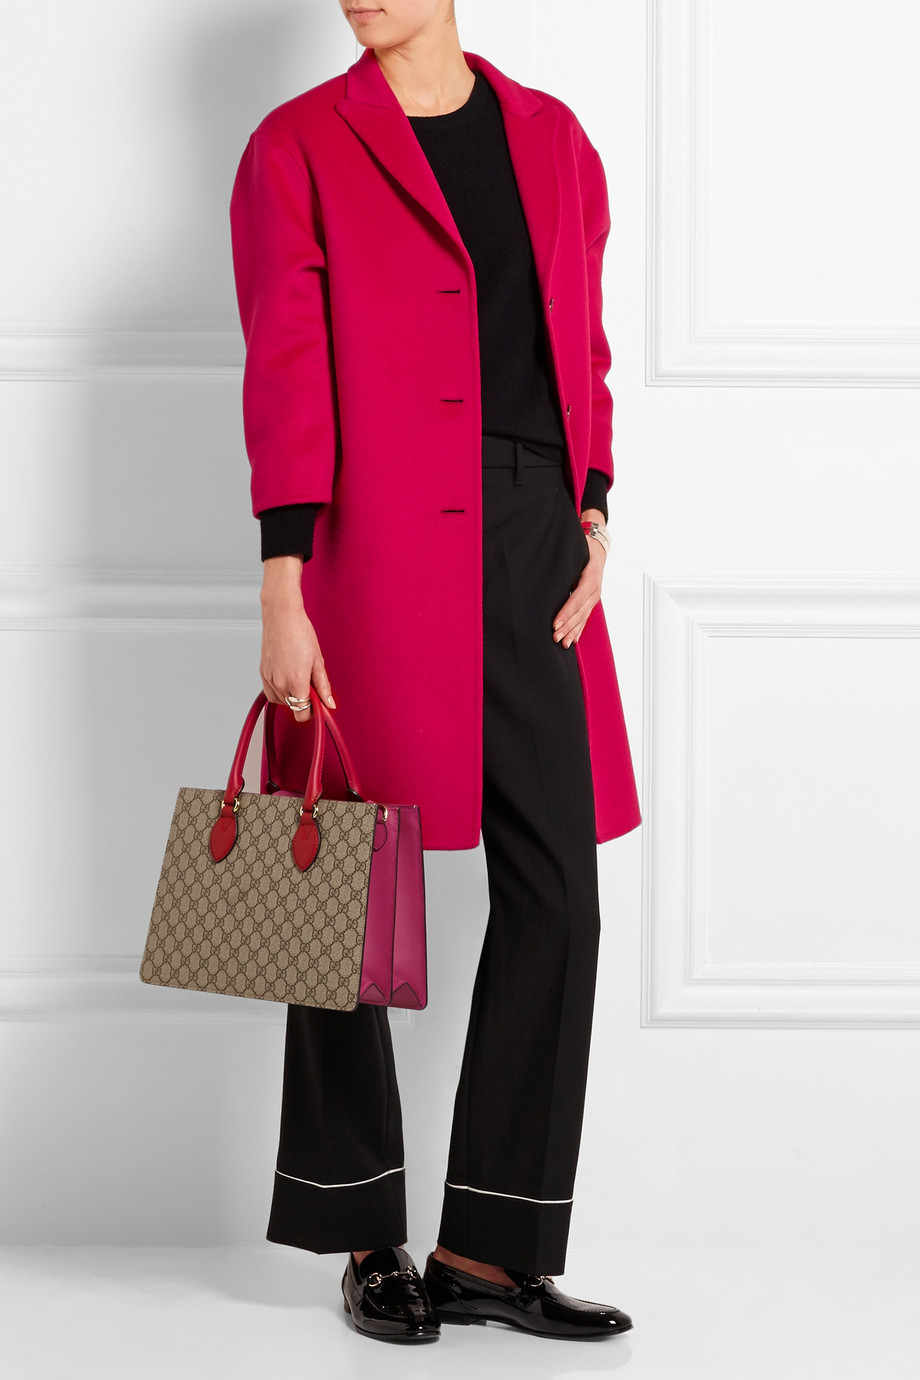 Gucci Oversized Wool and Angora-Blend Coat - £1,900